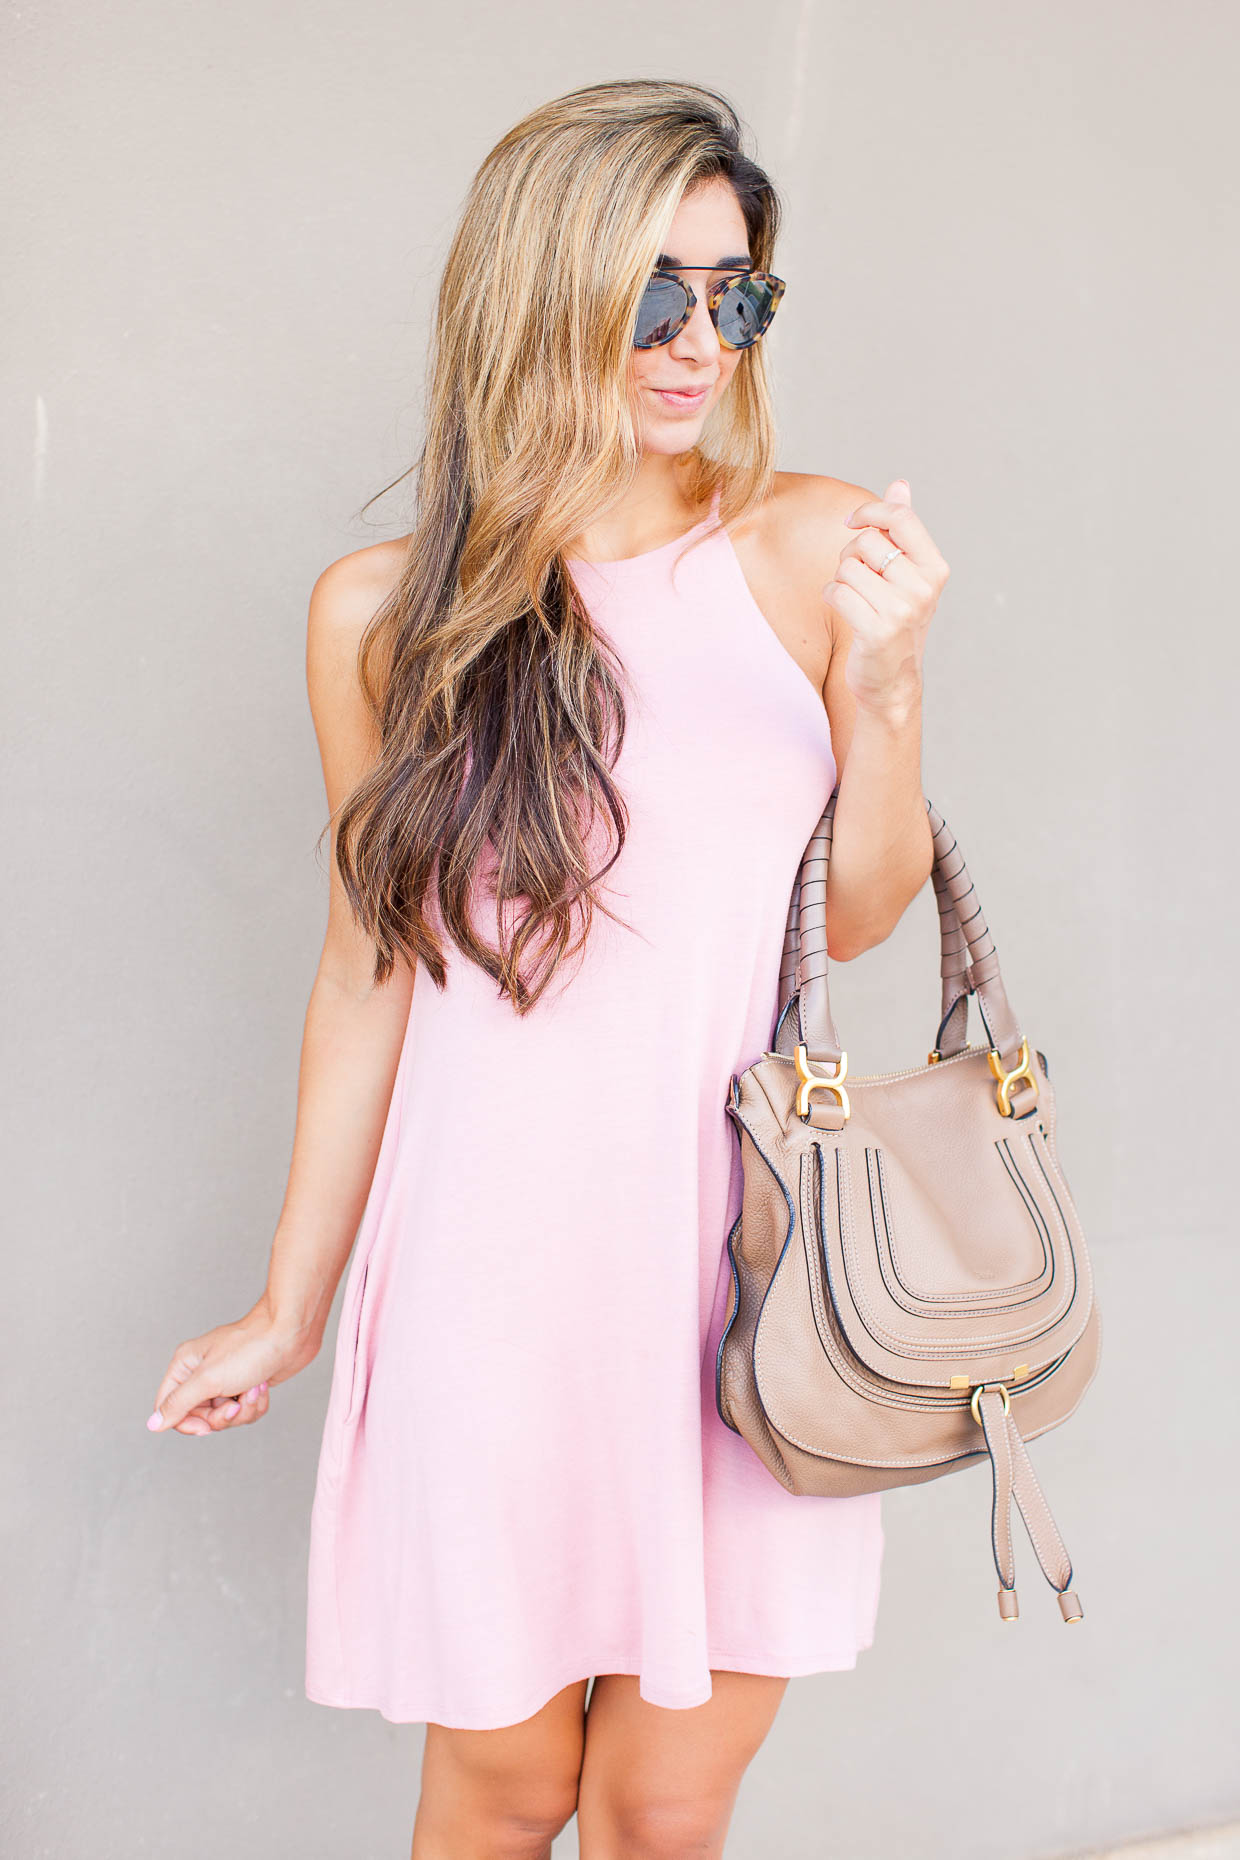 The Darling Detail is wearing a Socialite High Neck Knit Swing Dress and Westward Leaning Flower 1 Sunglasses, and is holding a Chloe 'Medium Marcie' Leather Satchel.